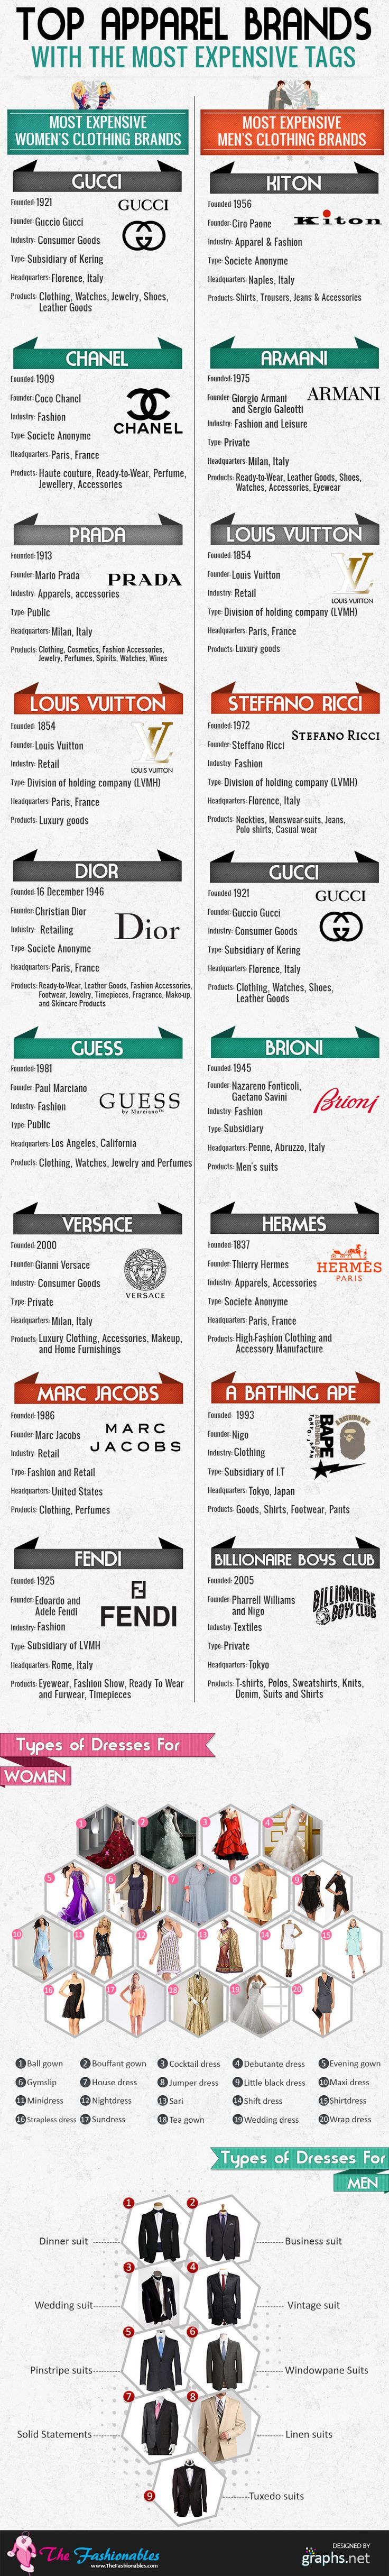 There are several top clothing brands that are often considered as status symbol among the rich people. For more information on the big names in clothes establishments that offers designer clothes and navigate through the above infographic.